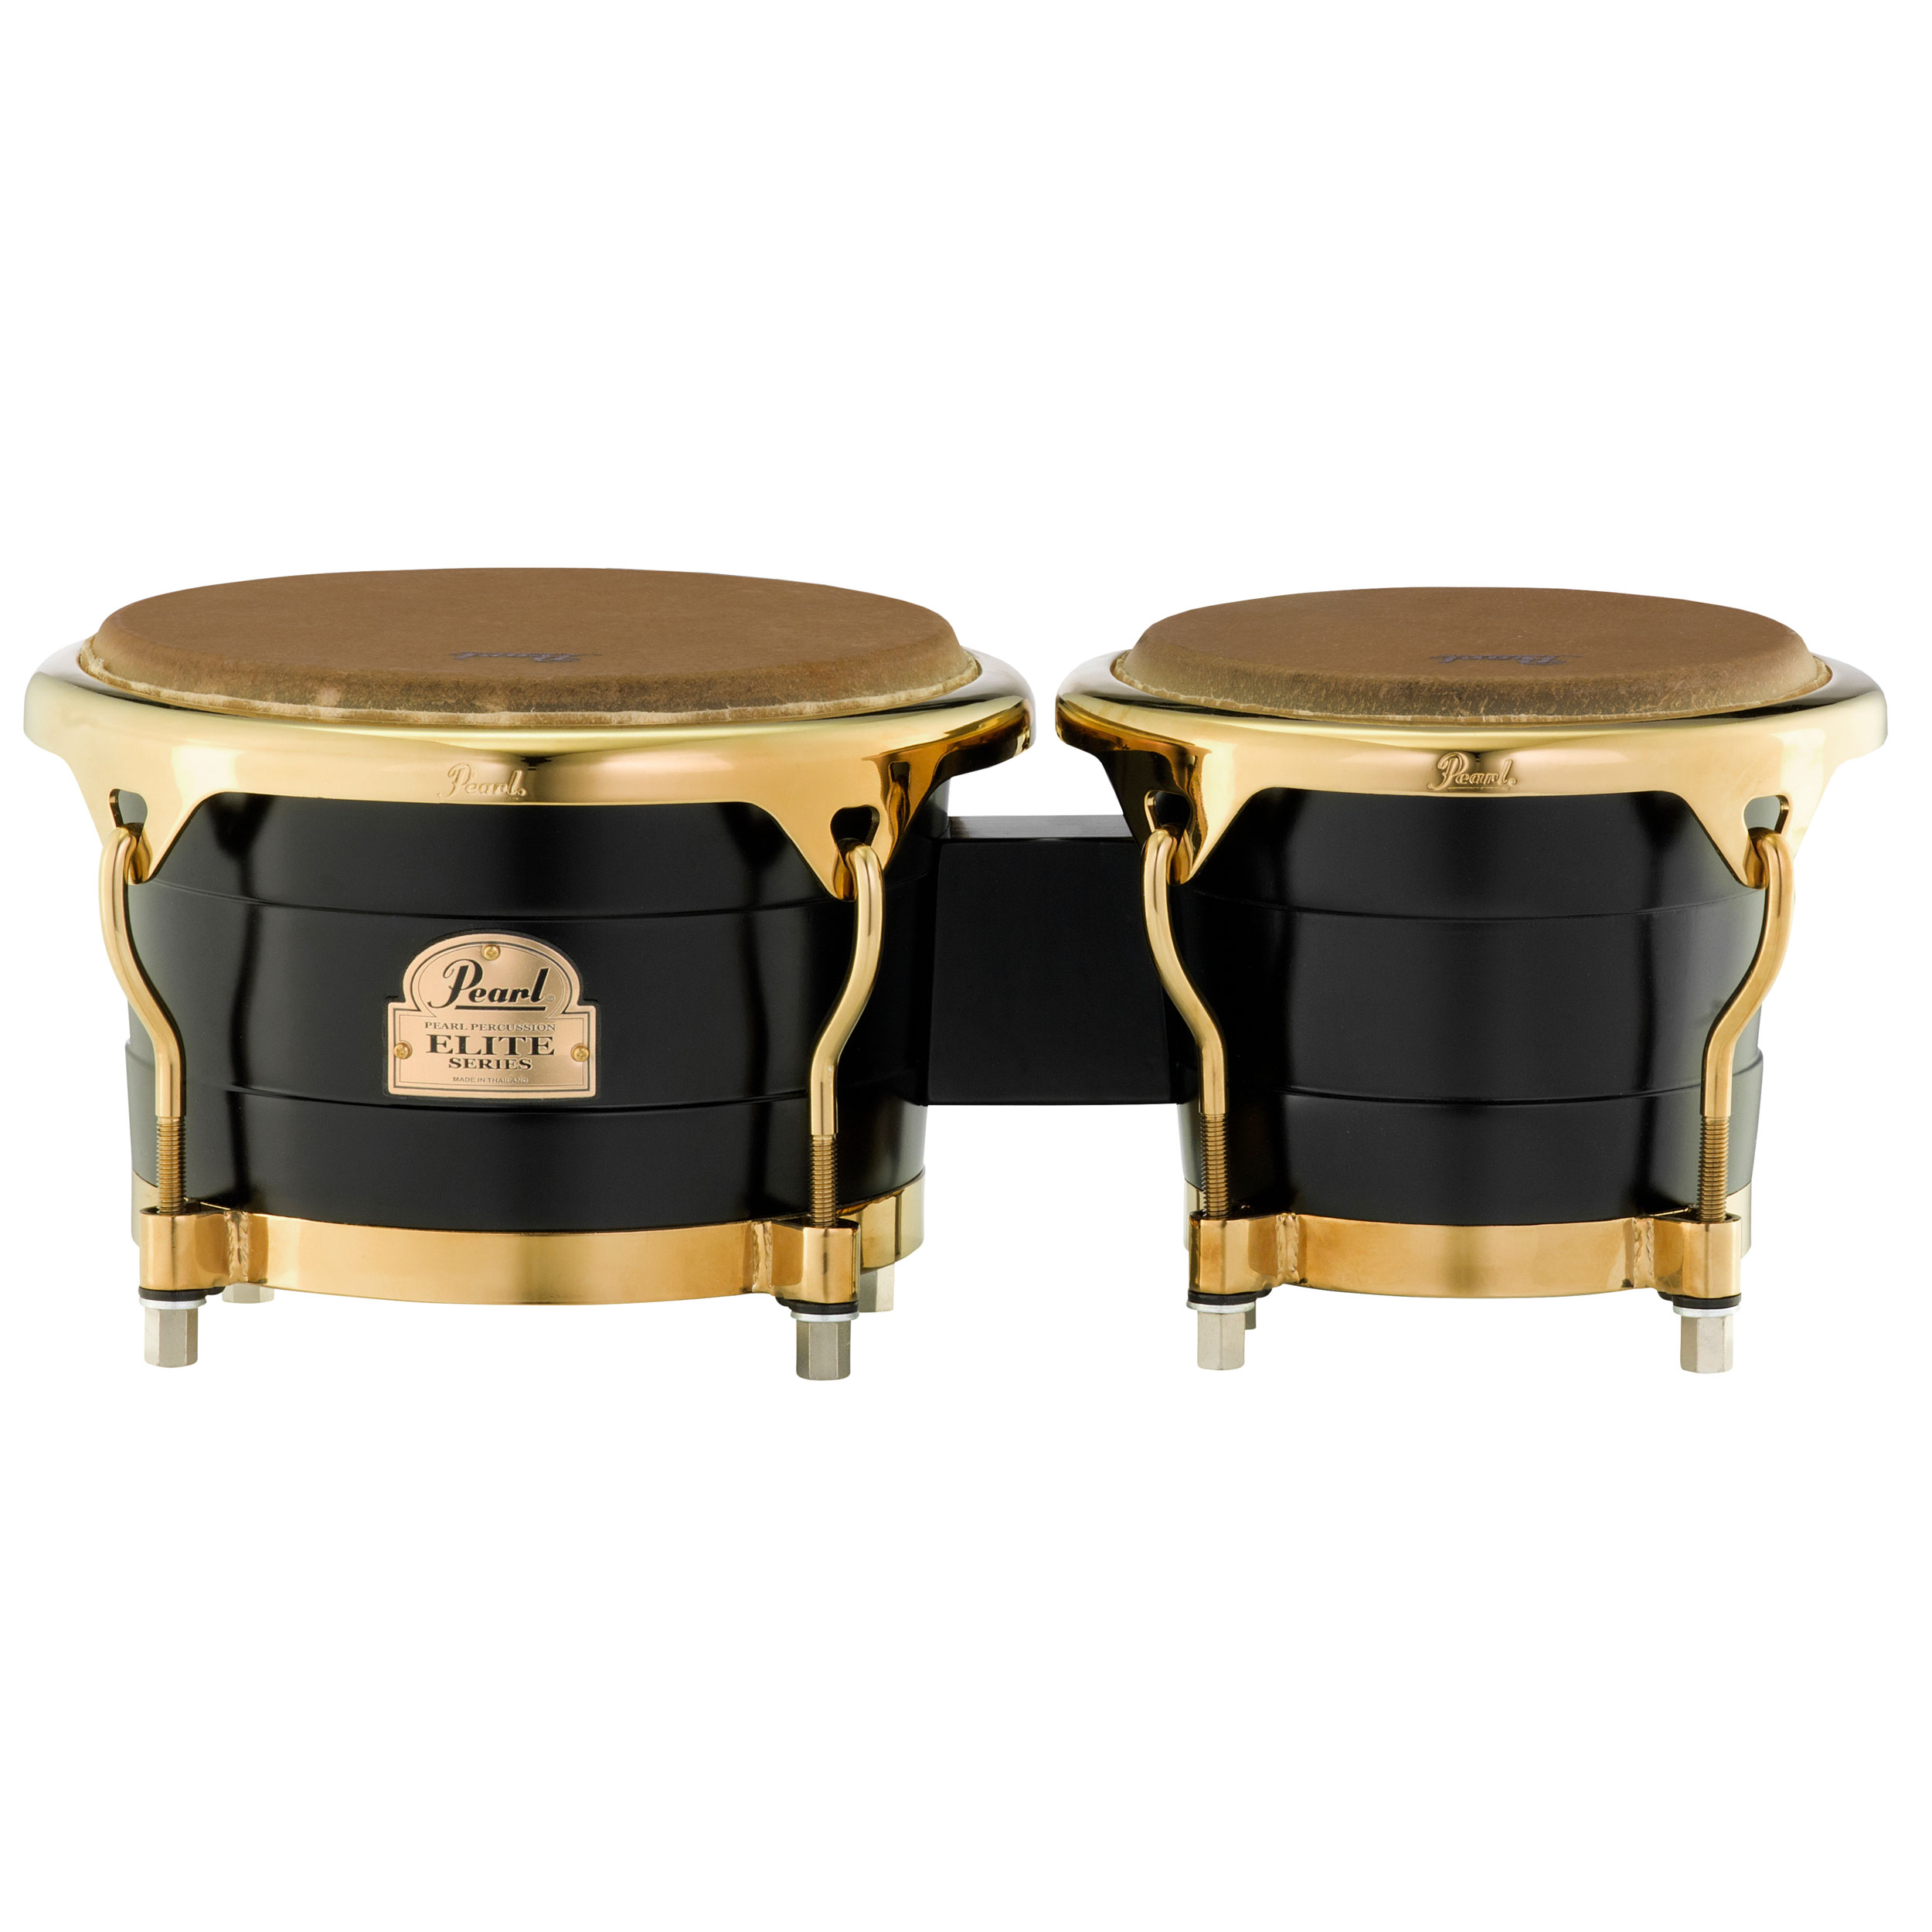 "Pearl 7"" & 9"" Elite Series Bongos"